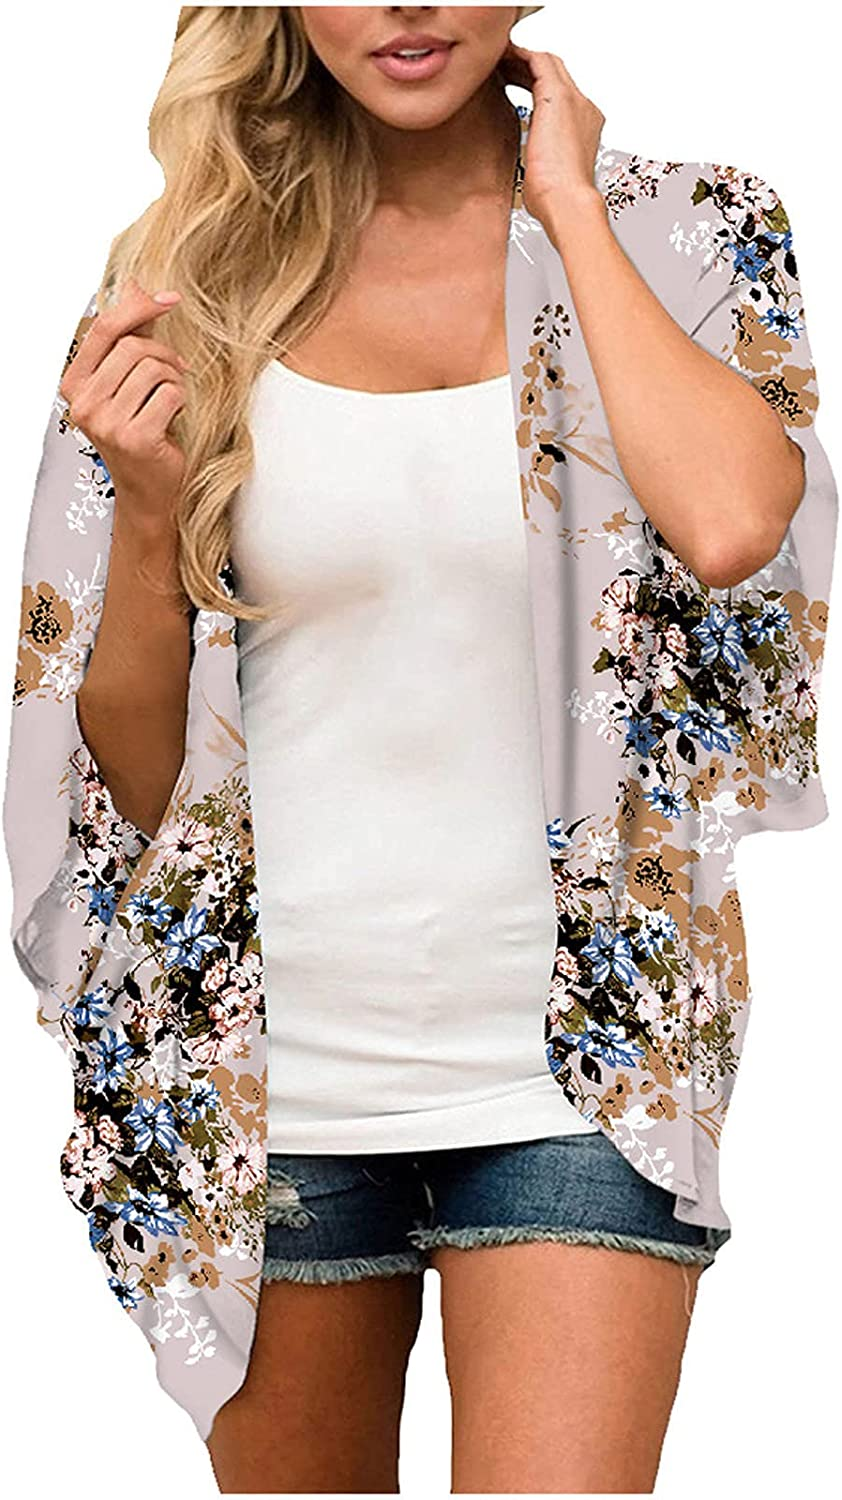 Womens Summer Fashion Middle Sleeve Tie Dye Gradient Chiffon Cardigan Floral Printed Beach Blouse Loose Fit Tops